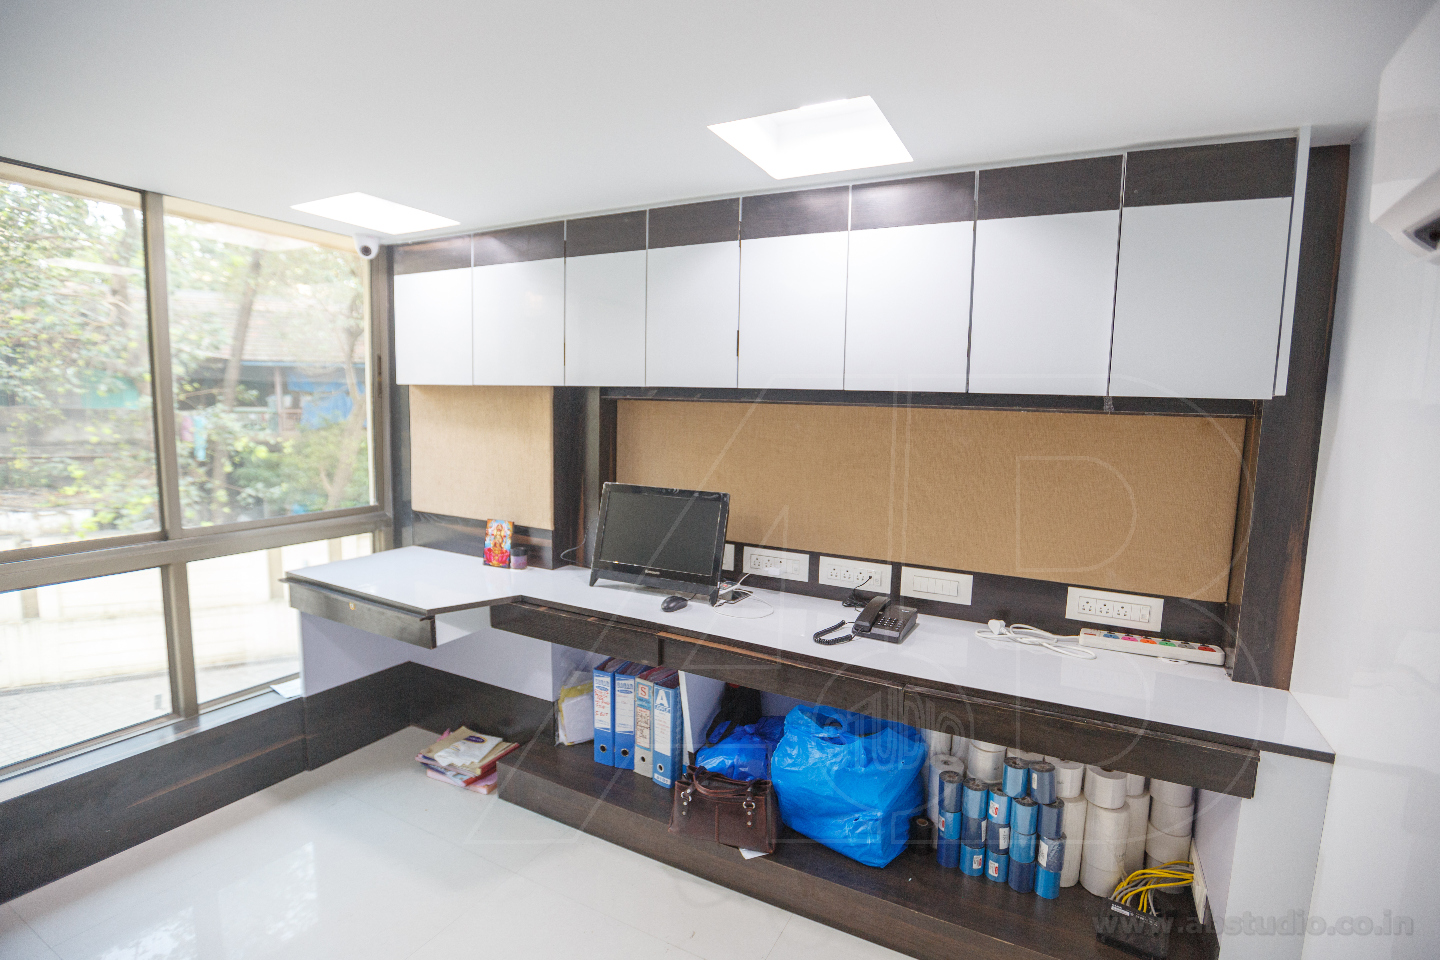 interior of office. Probably Not, These Professionals Have Different Tasks To Carry Out And The Style Of Office Design Will Reflect That Because Ideal Any Interior